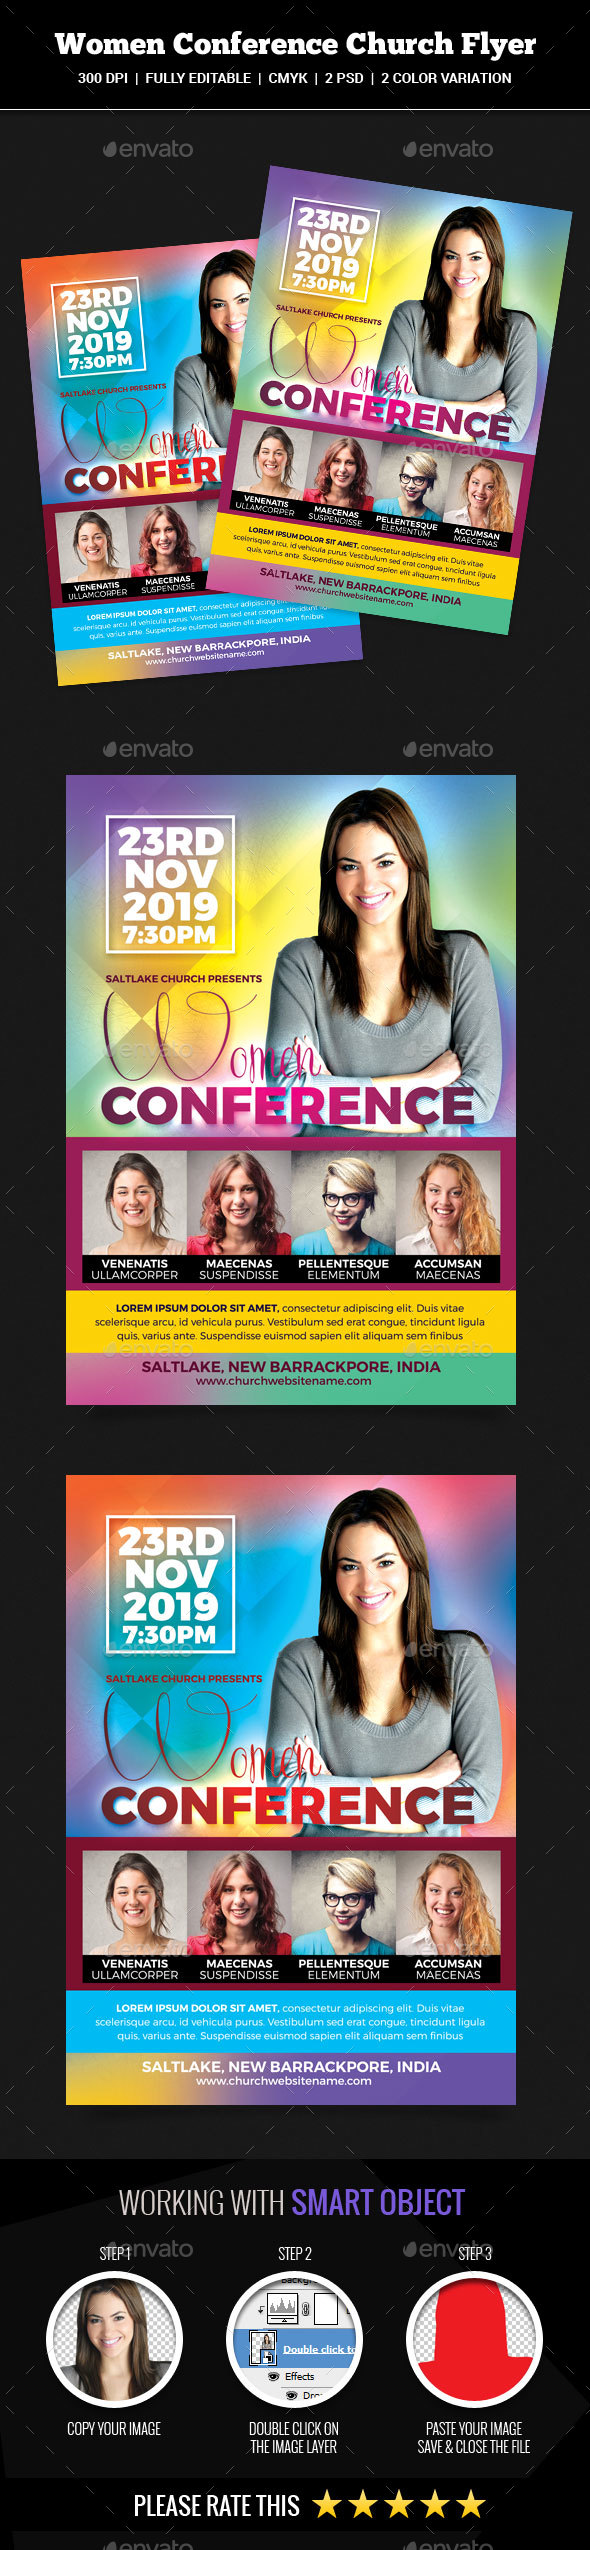 GraphicRiver Women Conference Church Flyer 20816424